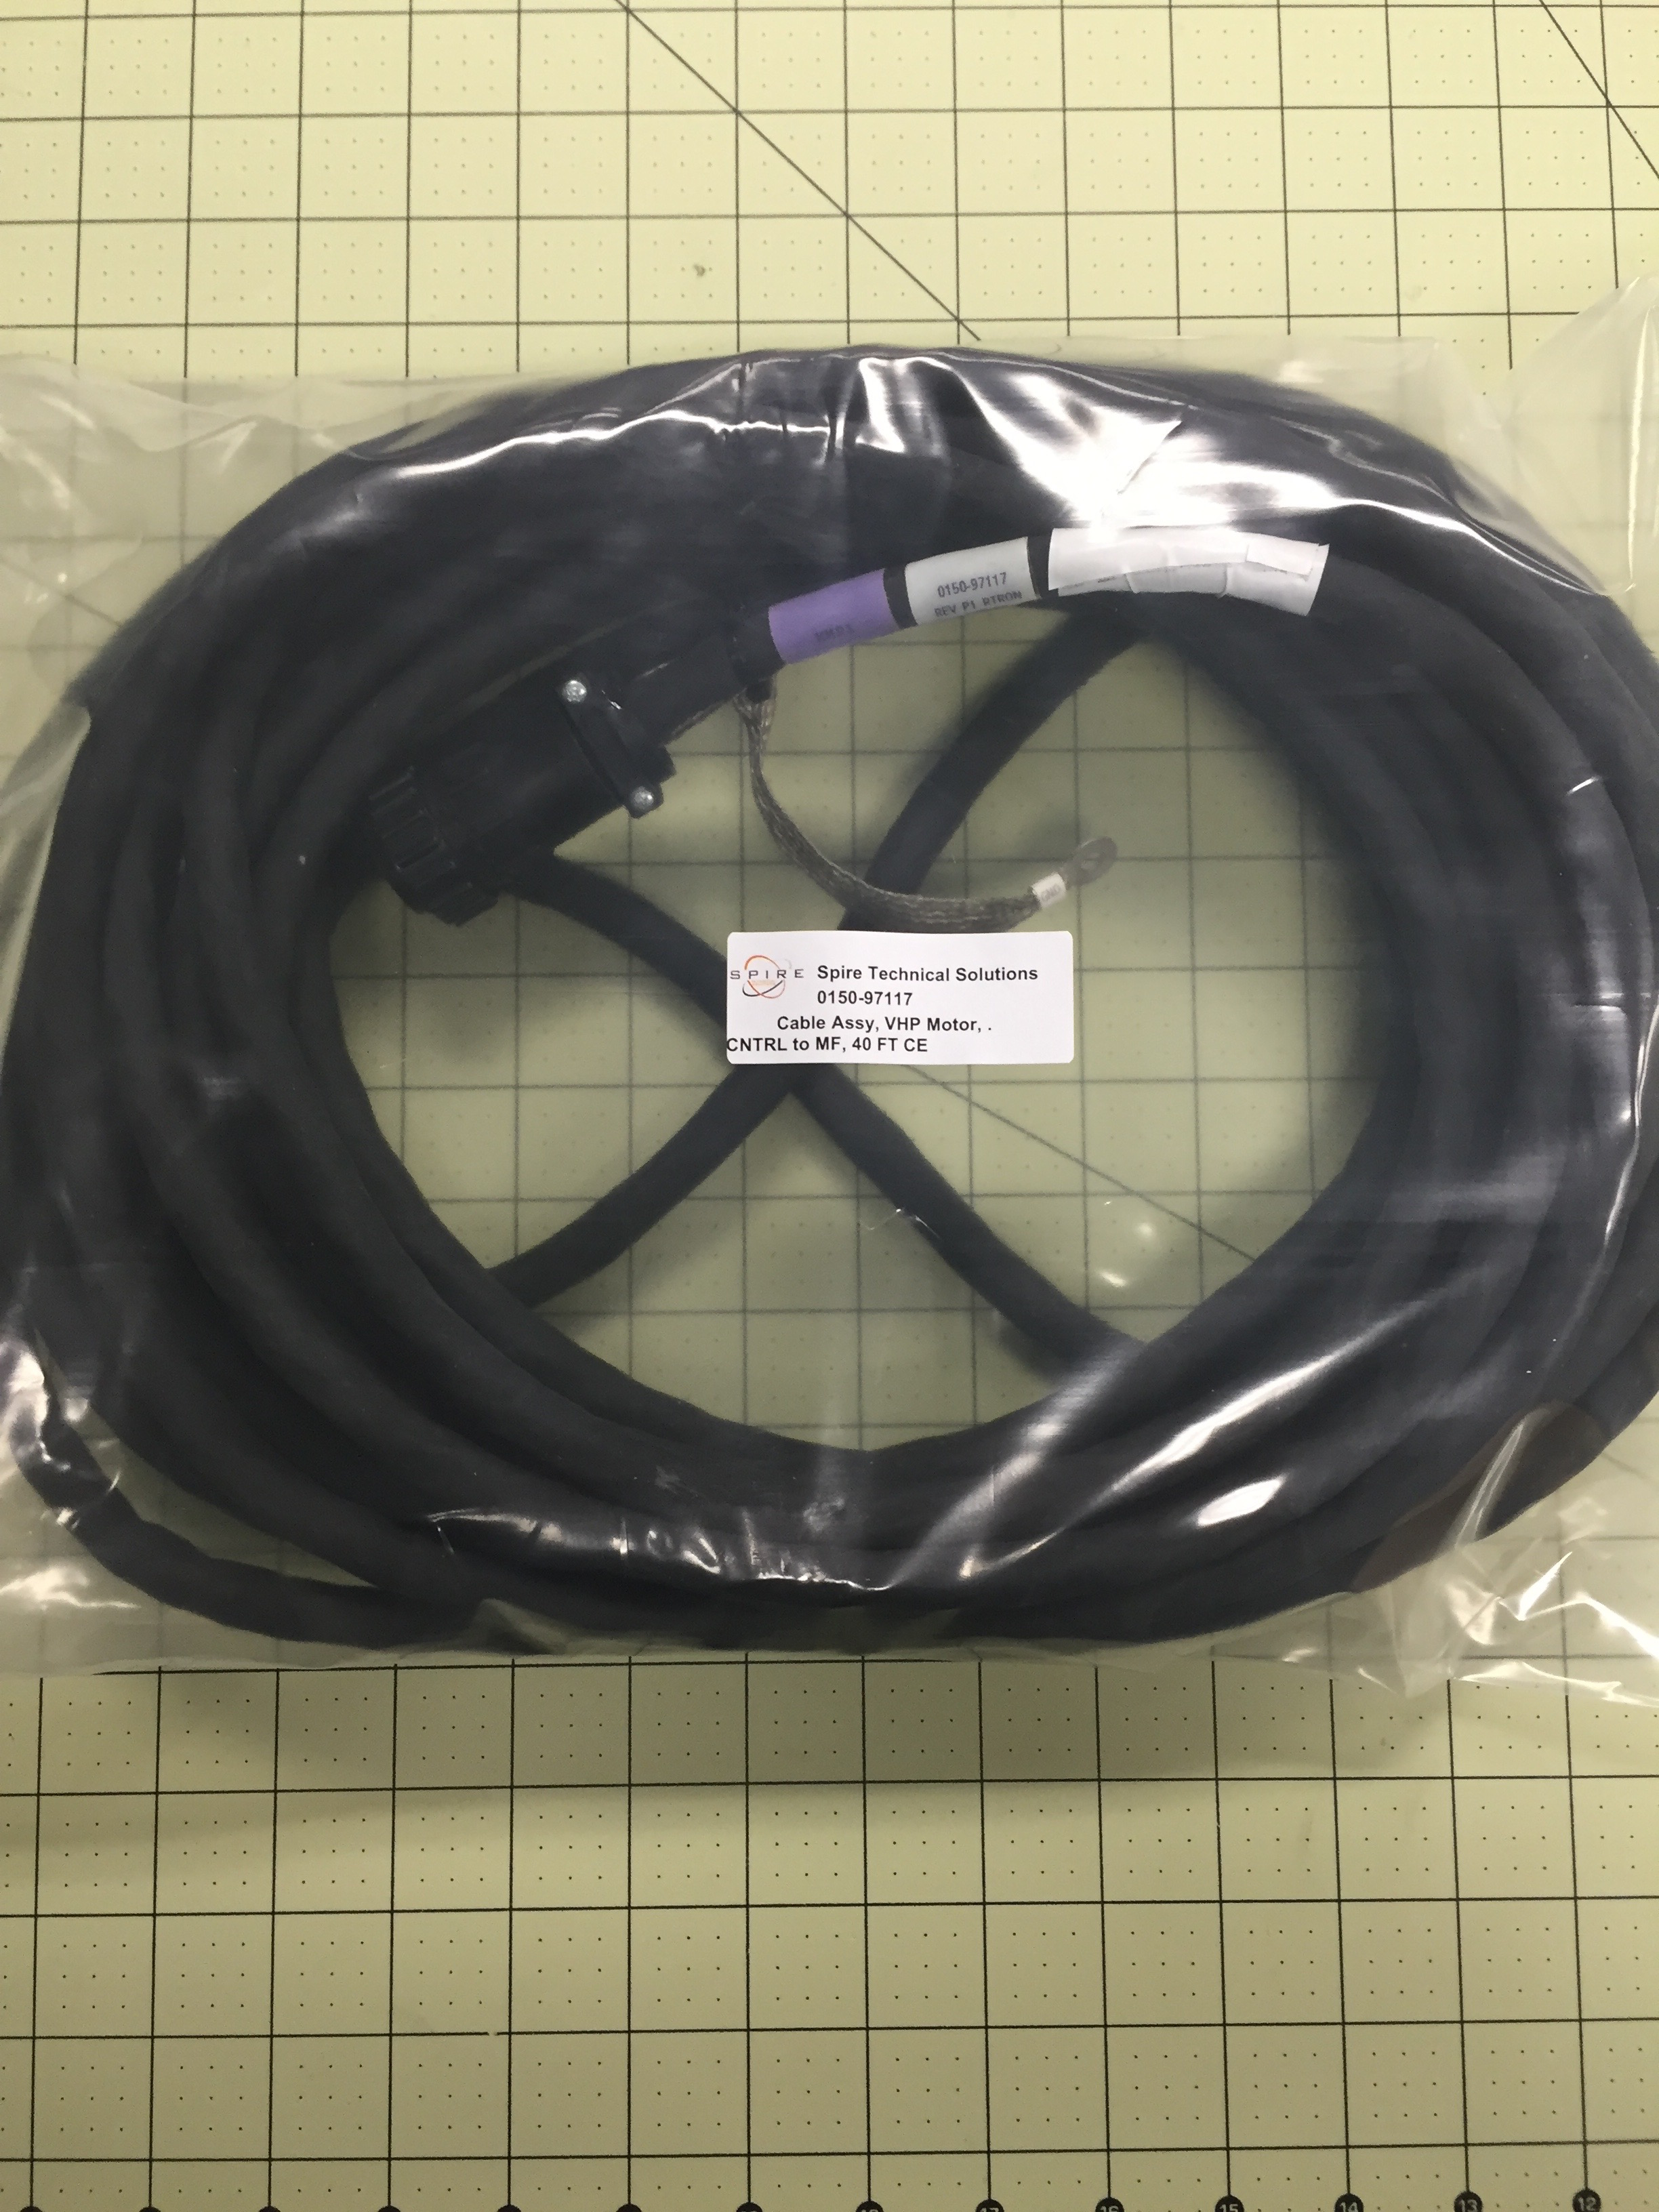 Cable Assy, VHP Motor,